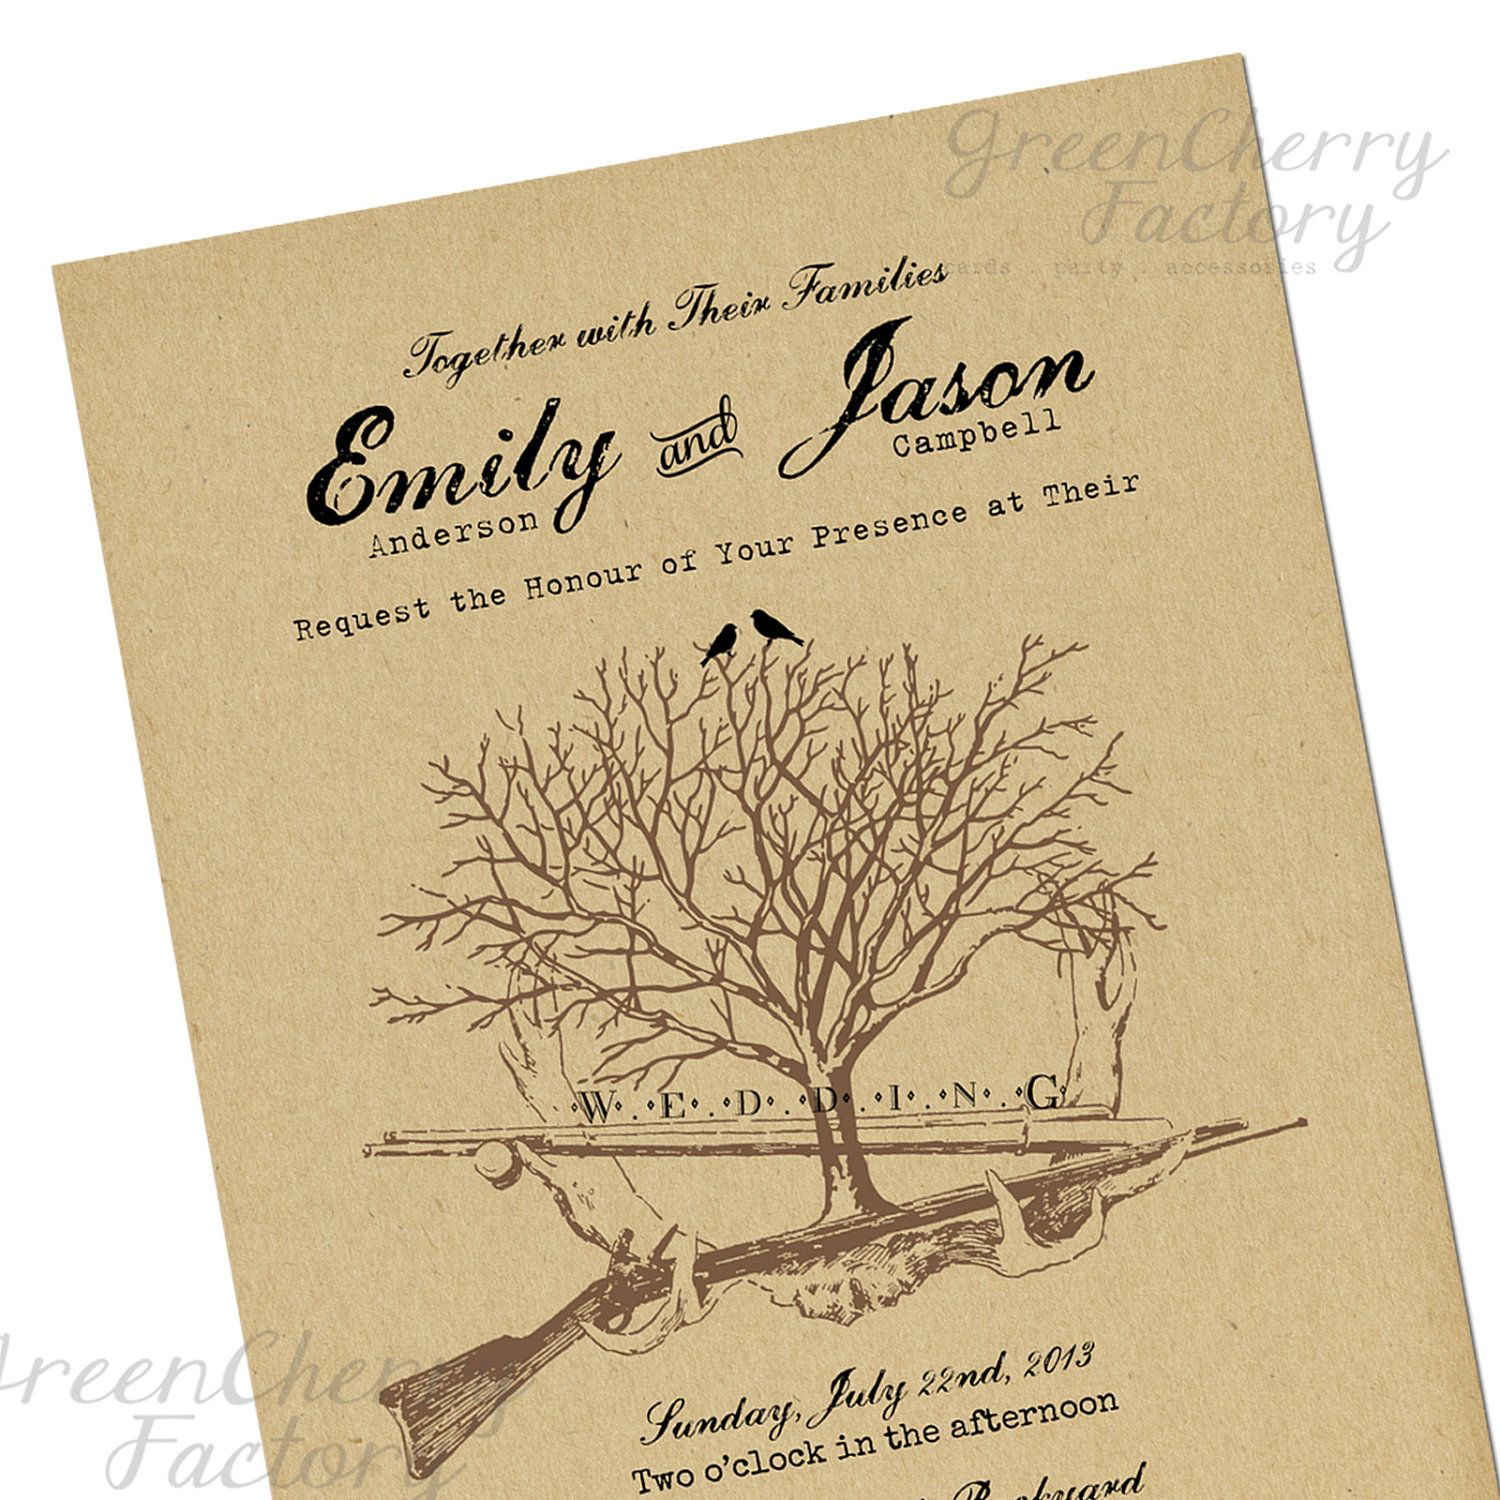 Hunting wedding invitations hunting fishing wedding for Fishing wedding invitations